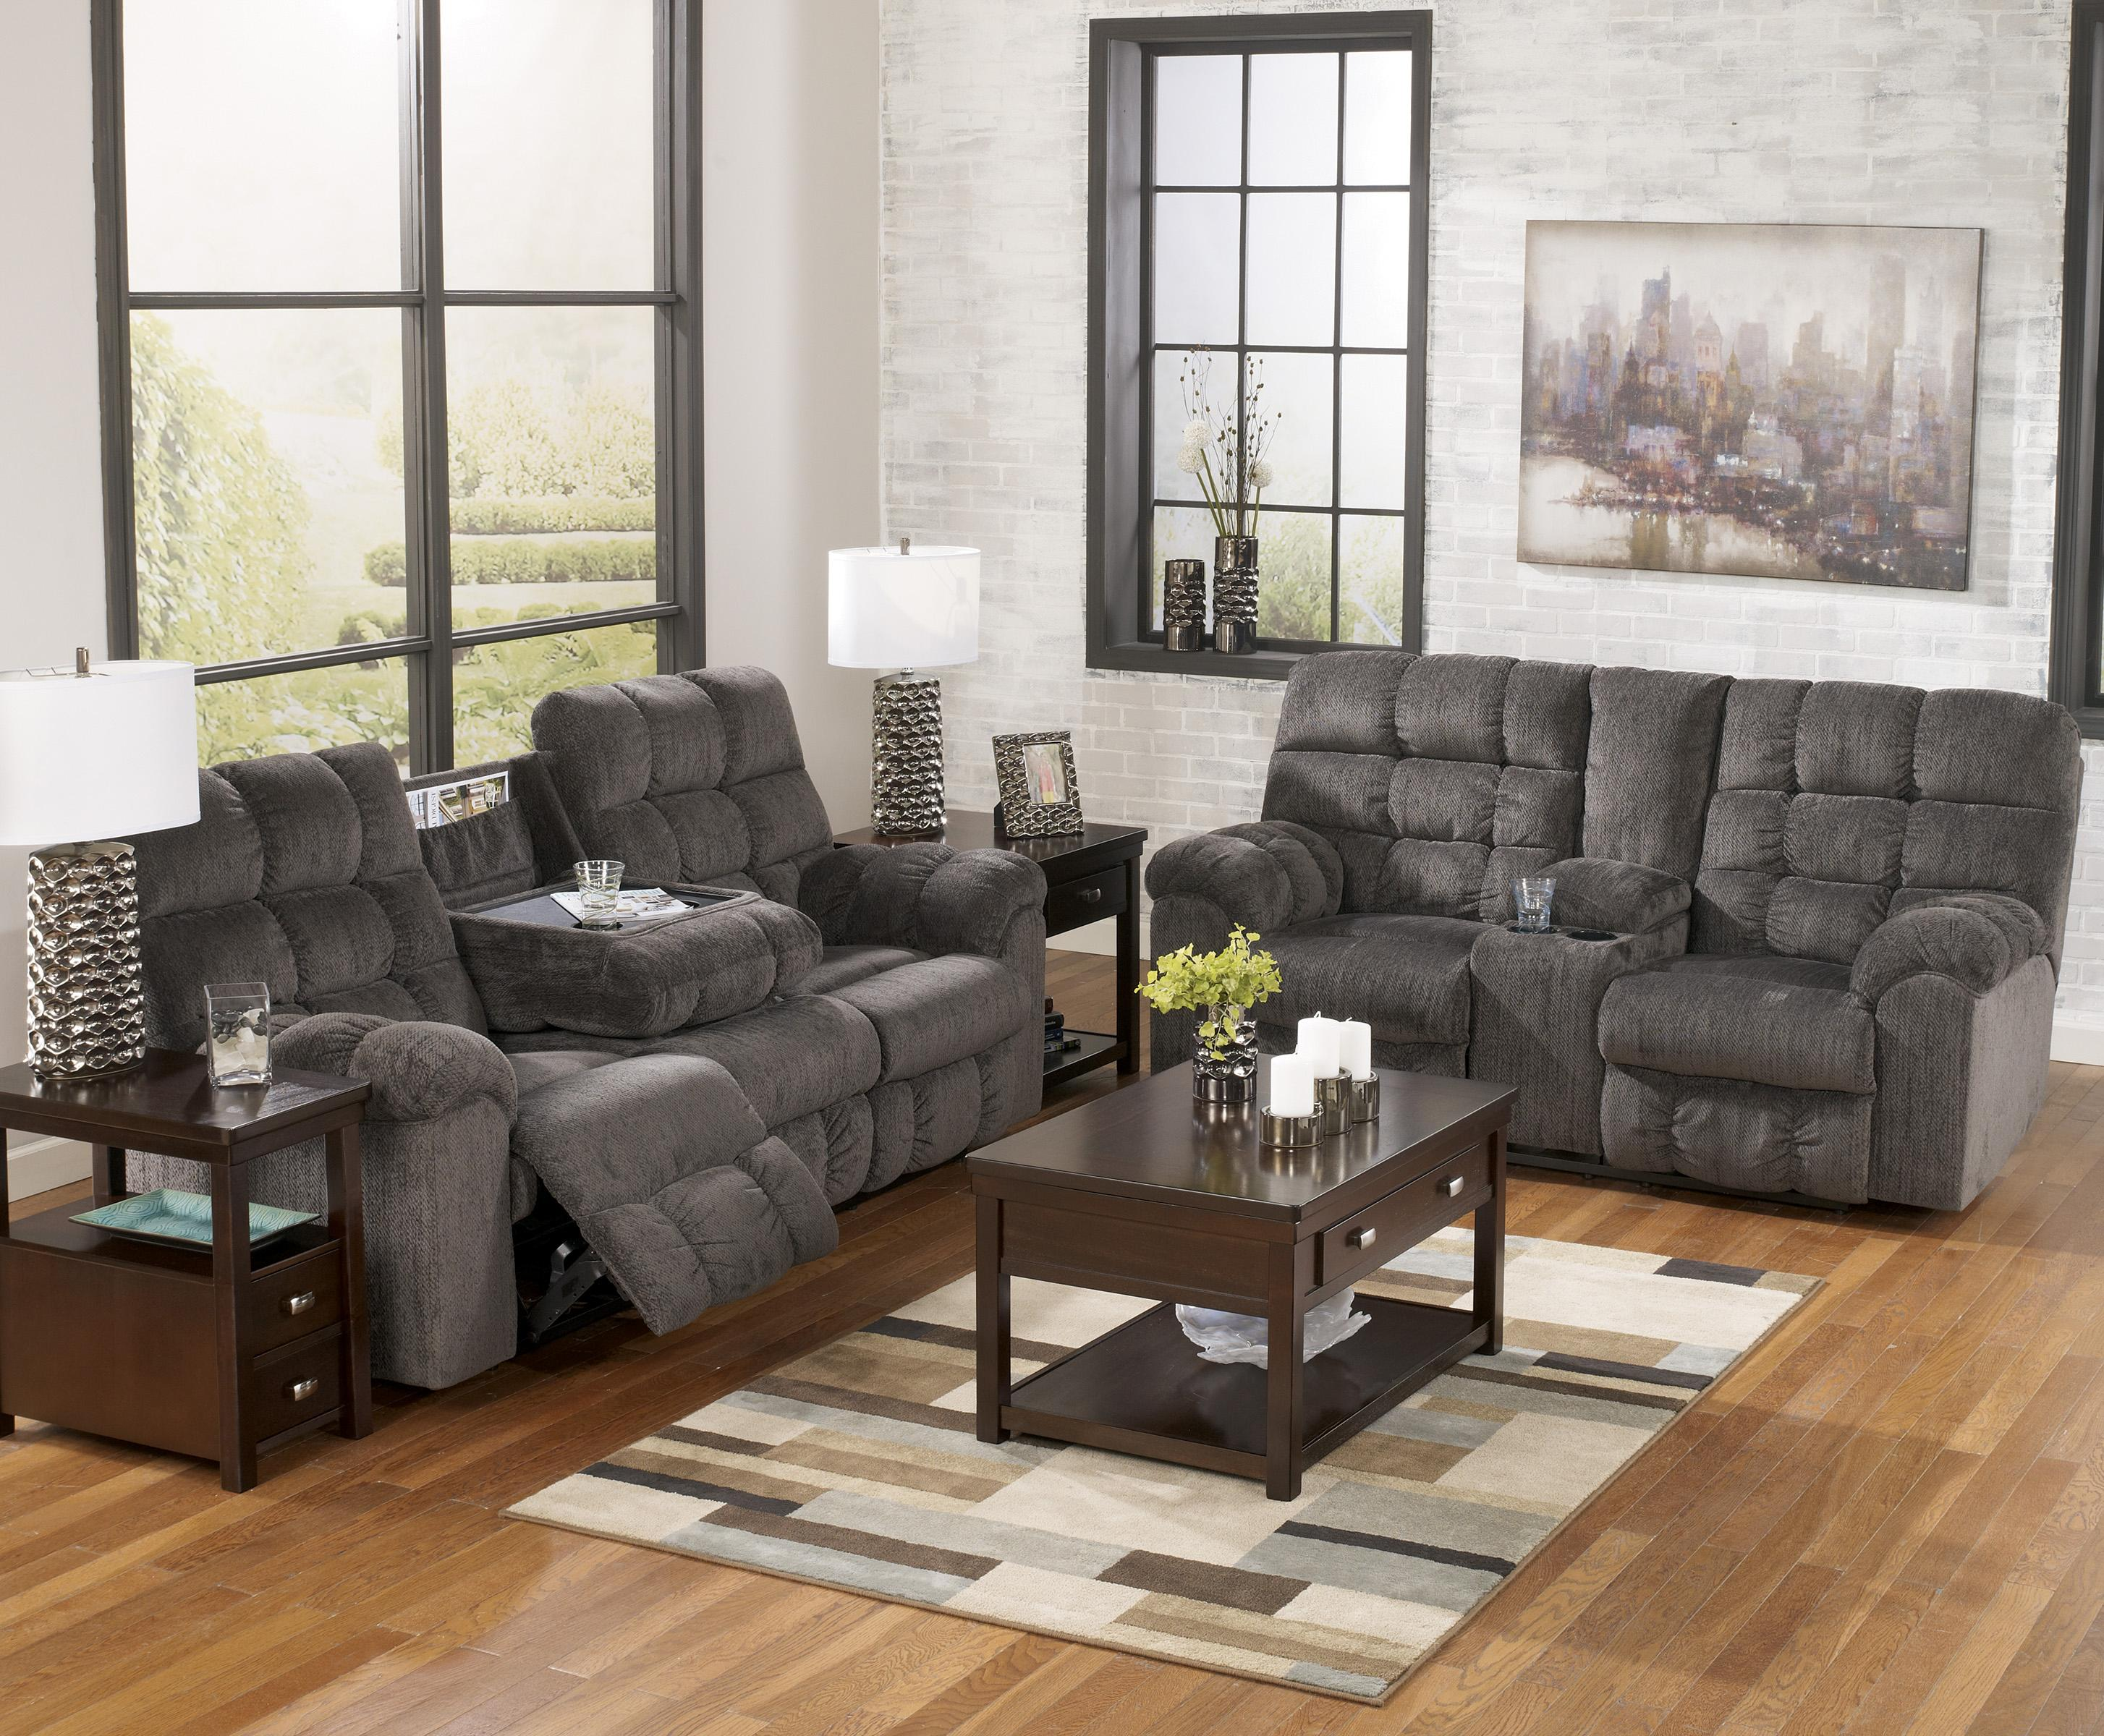 Double Reclining Loveseat With Console And Cup Holders By Signature Design By Ashley Wolf And